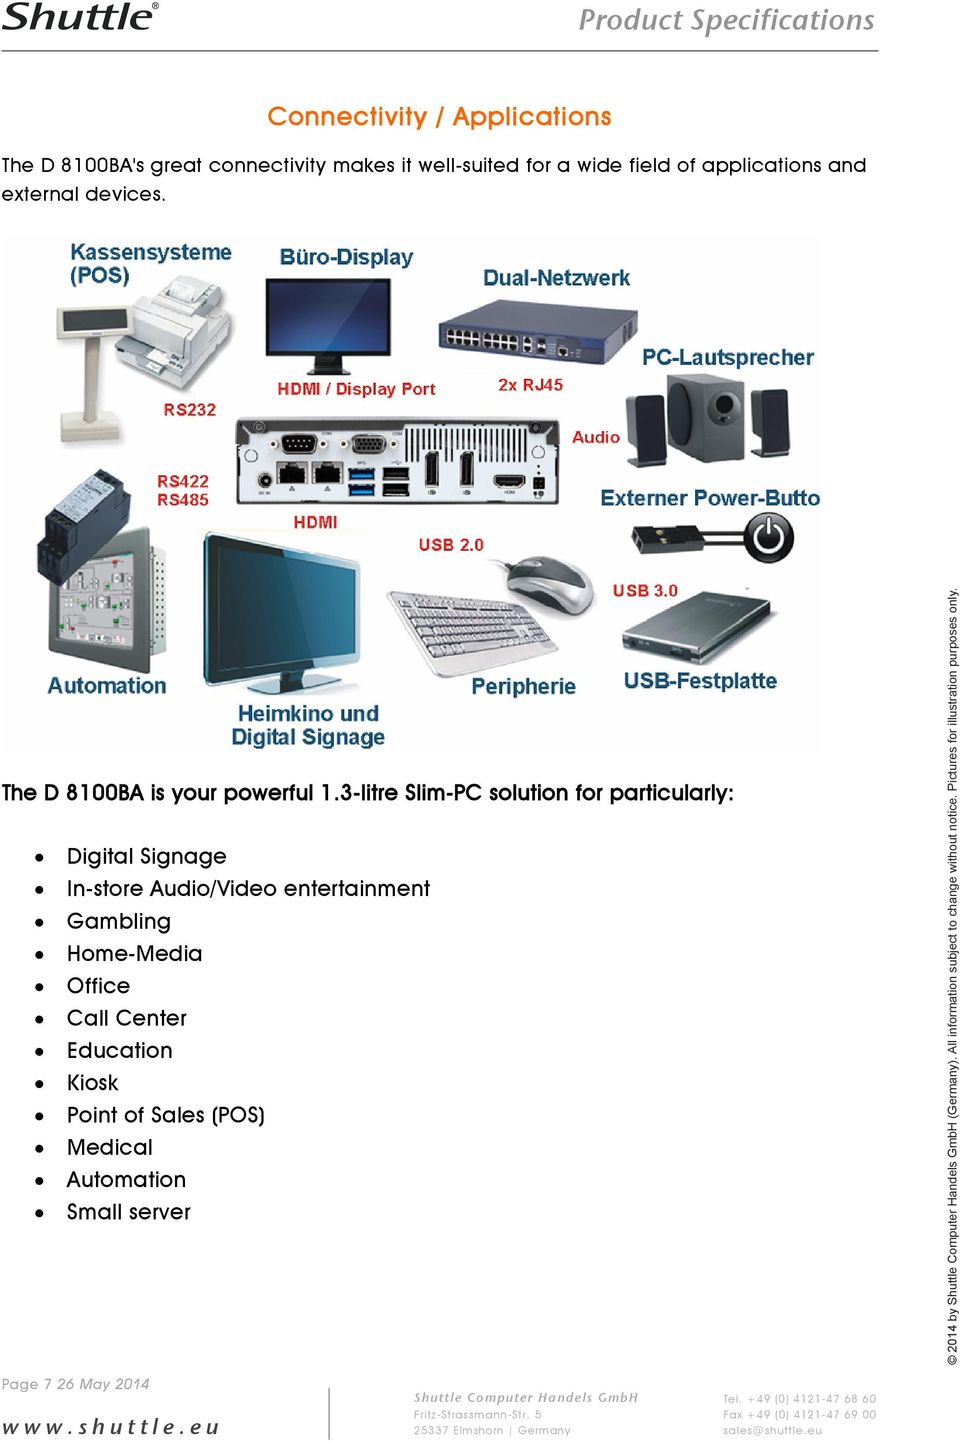 3-litre Slim-PC solution for particularly: Digital Signage In-store Audio/Video entertainment Gambling Home-Media Office